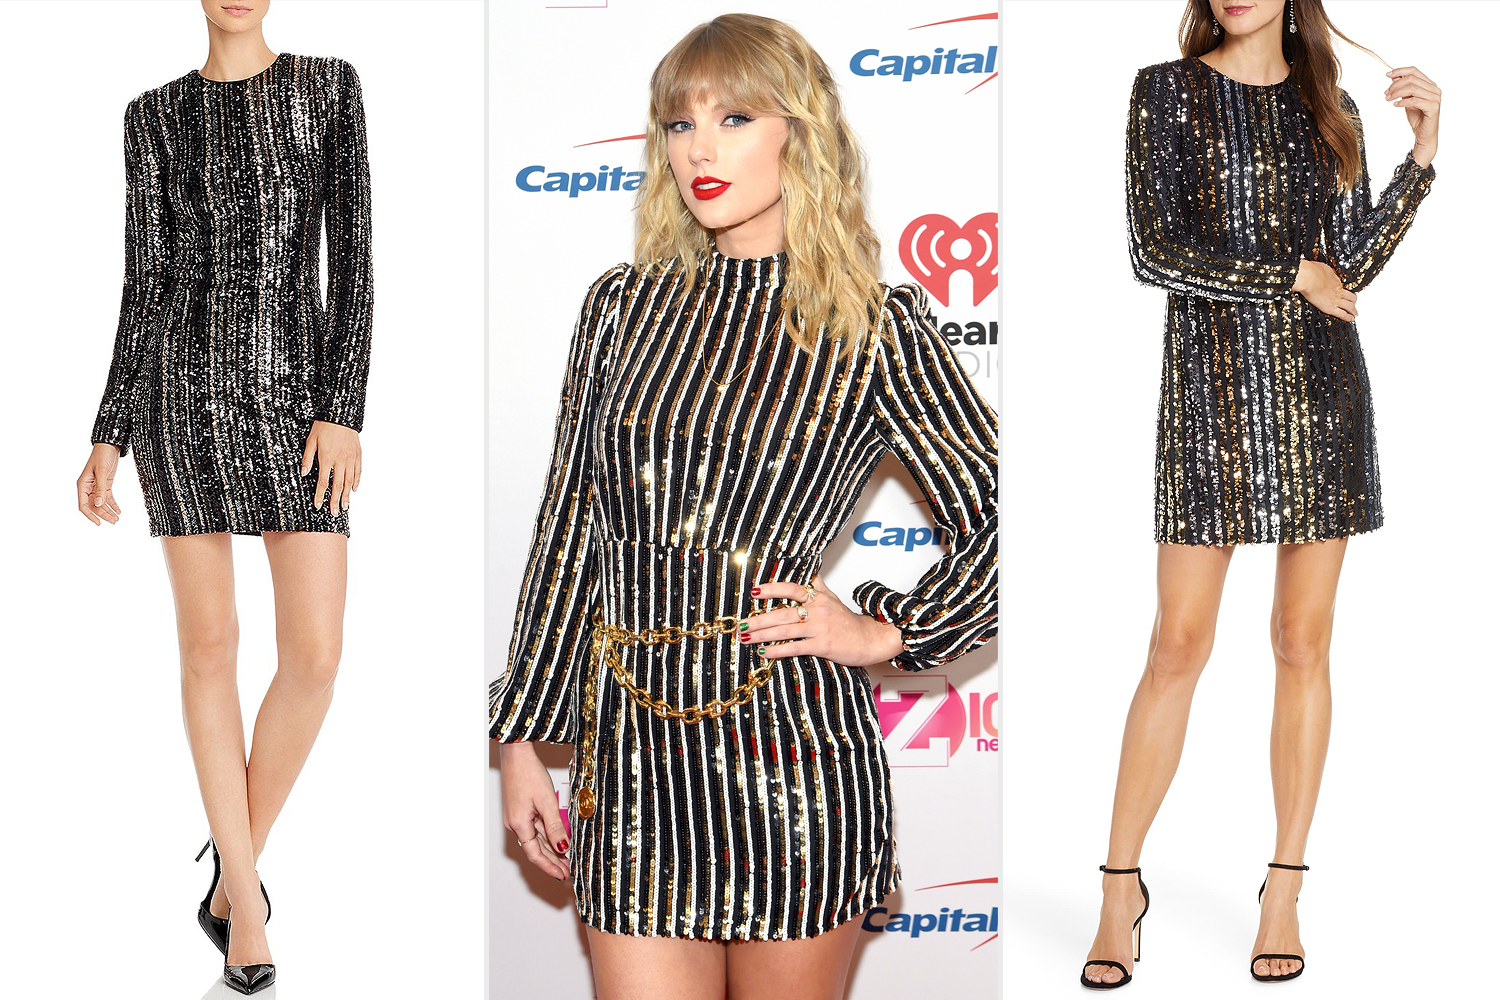 NEW YORK, NEW YORK - DECEMBER 13: Taylor Swift poses backstage at iHeartRadio's Z100 Jingle Ball 2019 Presented By Capital One on December 13, 2019 in New York City.